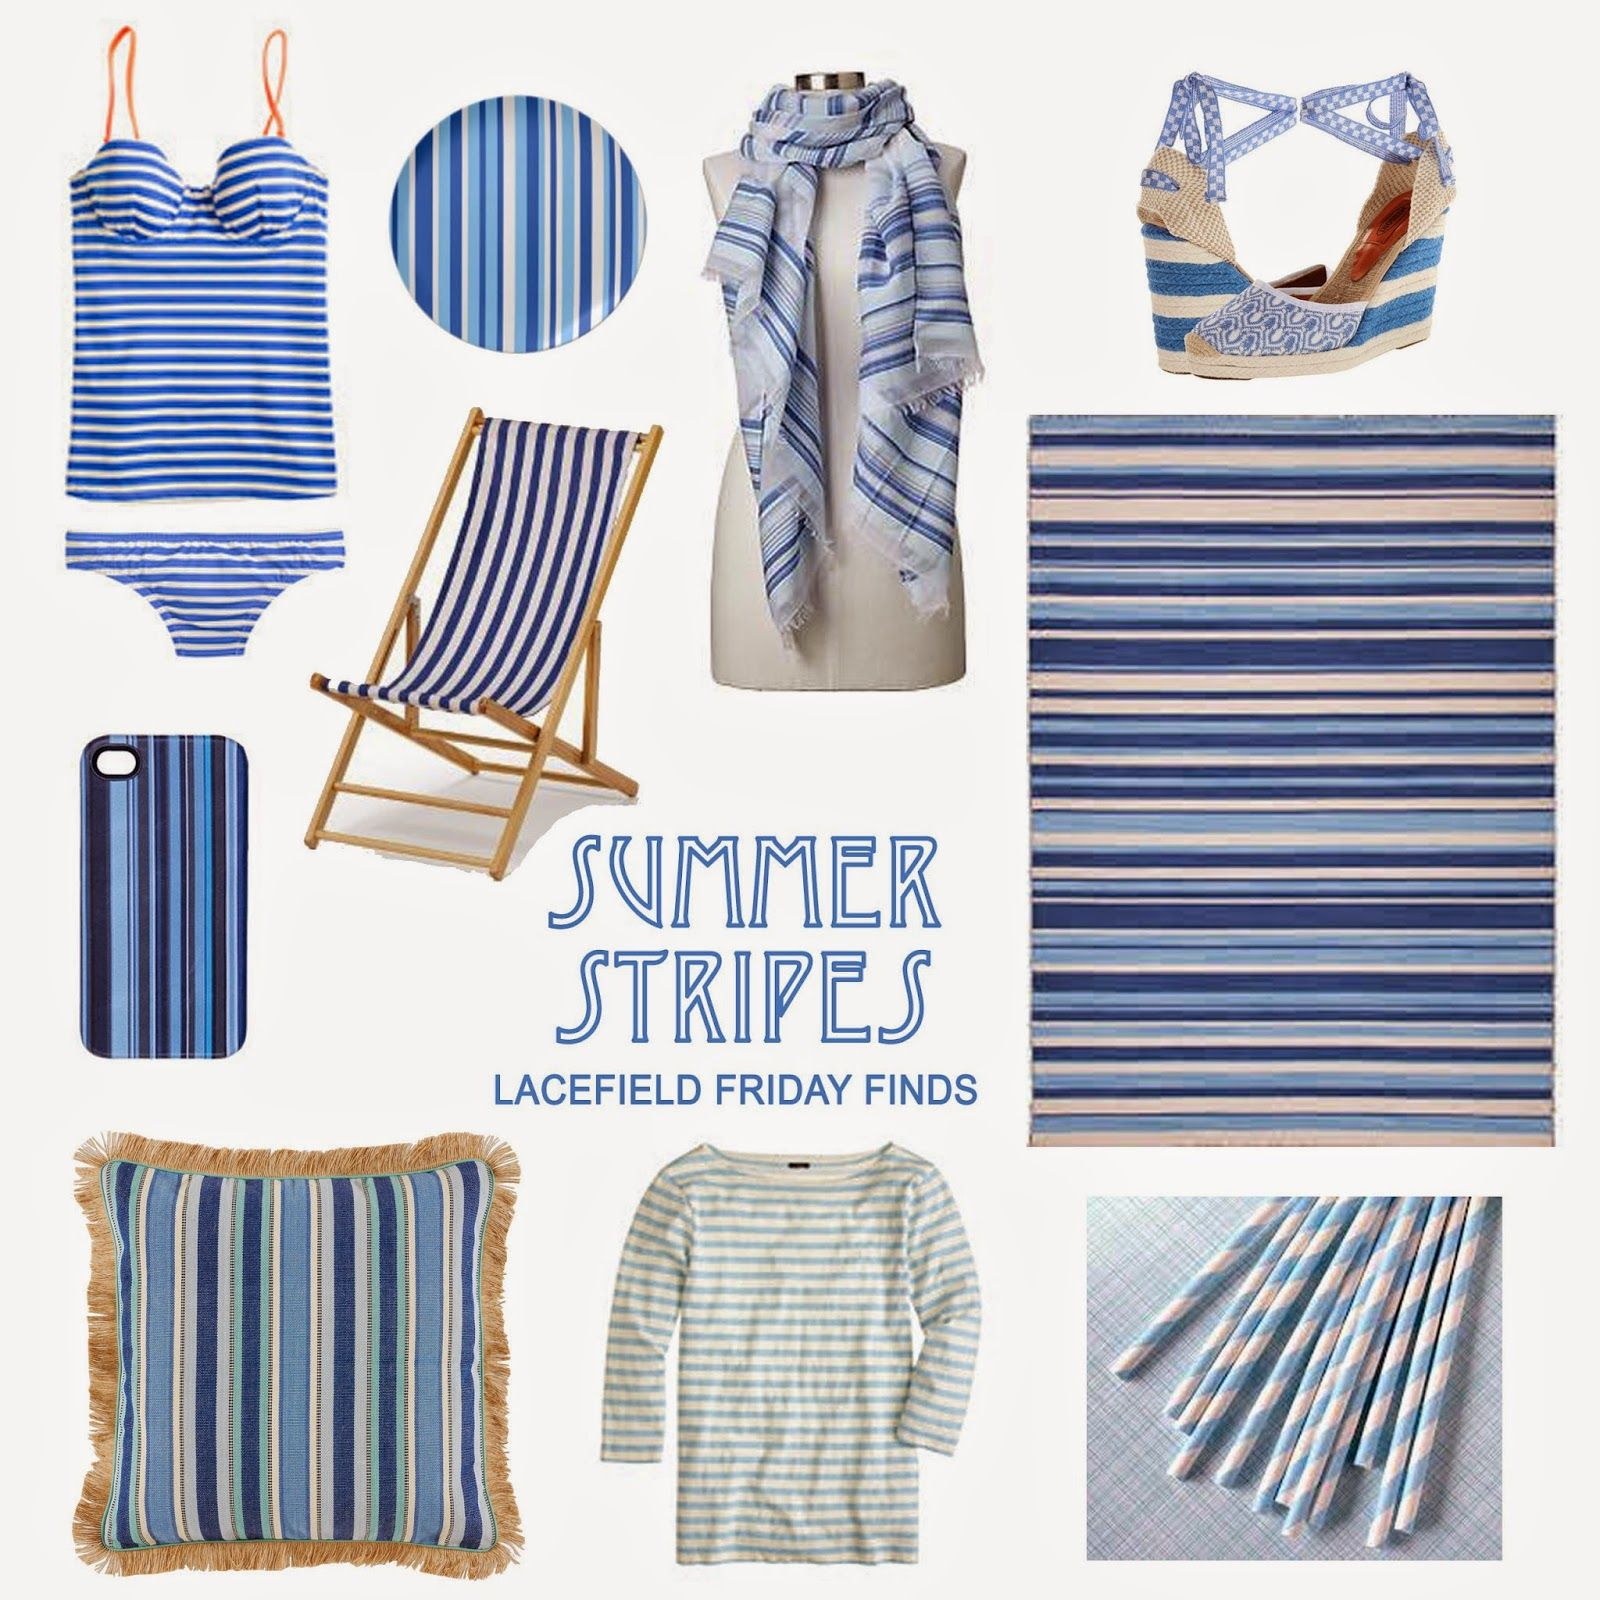 Friday Finds New Looks From Eijffinger: Friday Finds: Summer Stripes From Lacefield Inspired